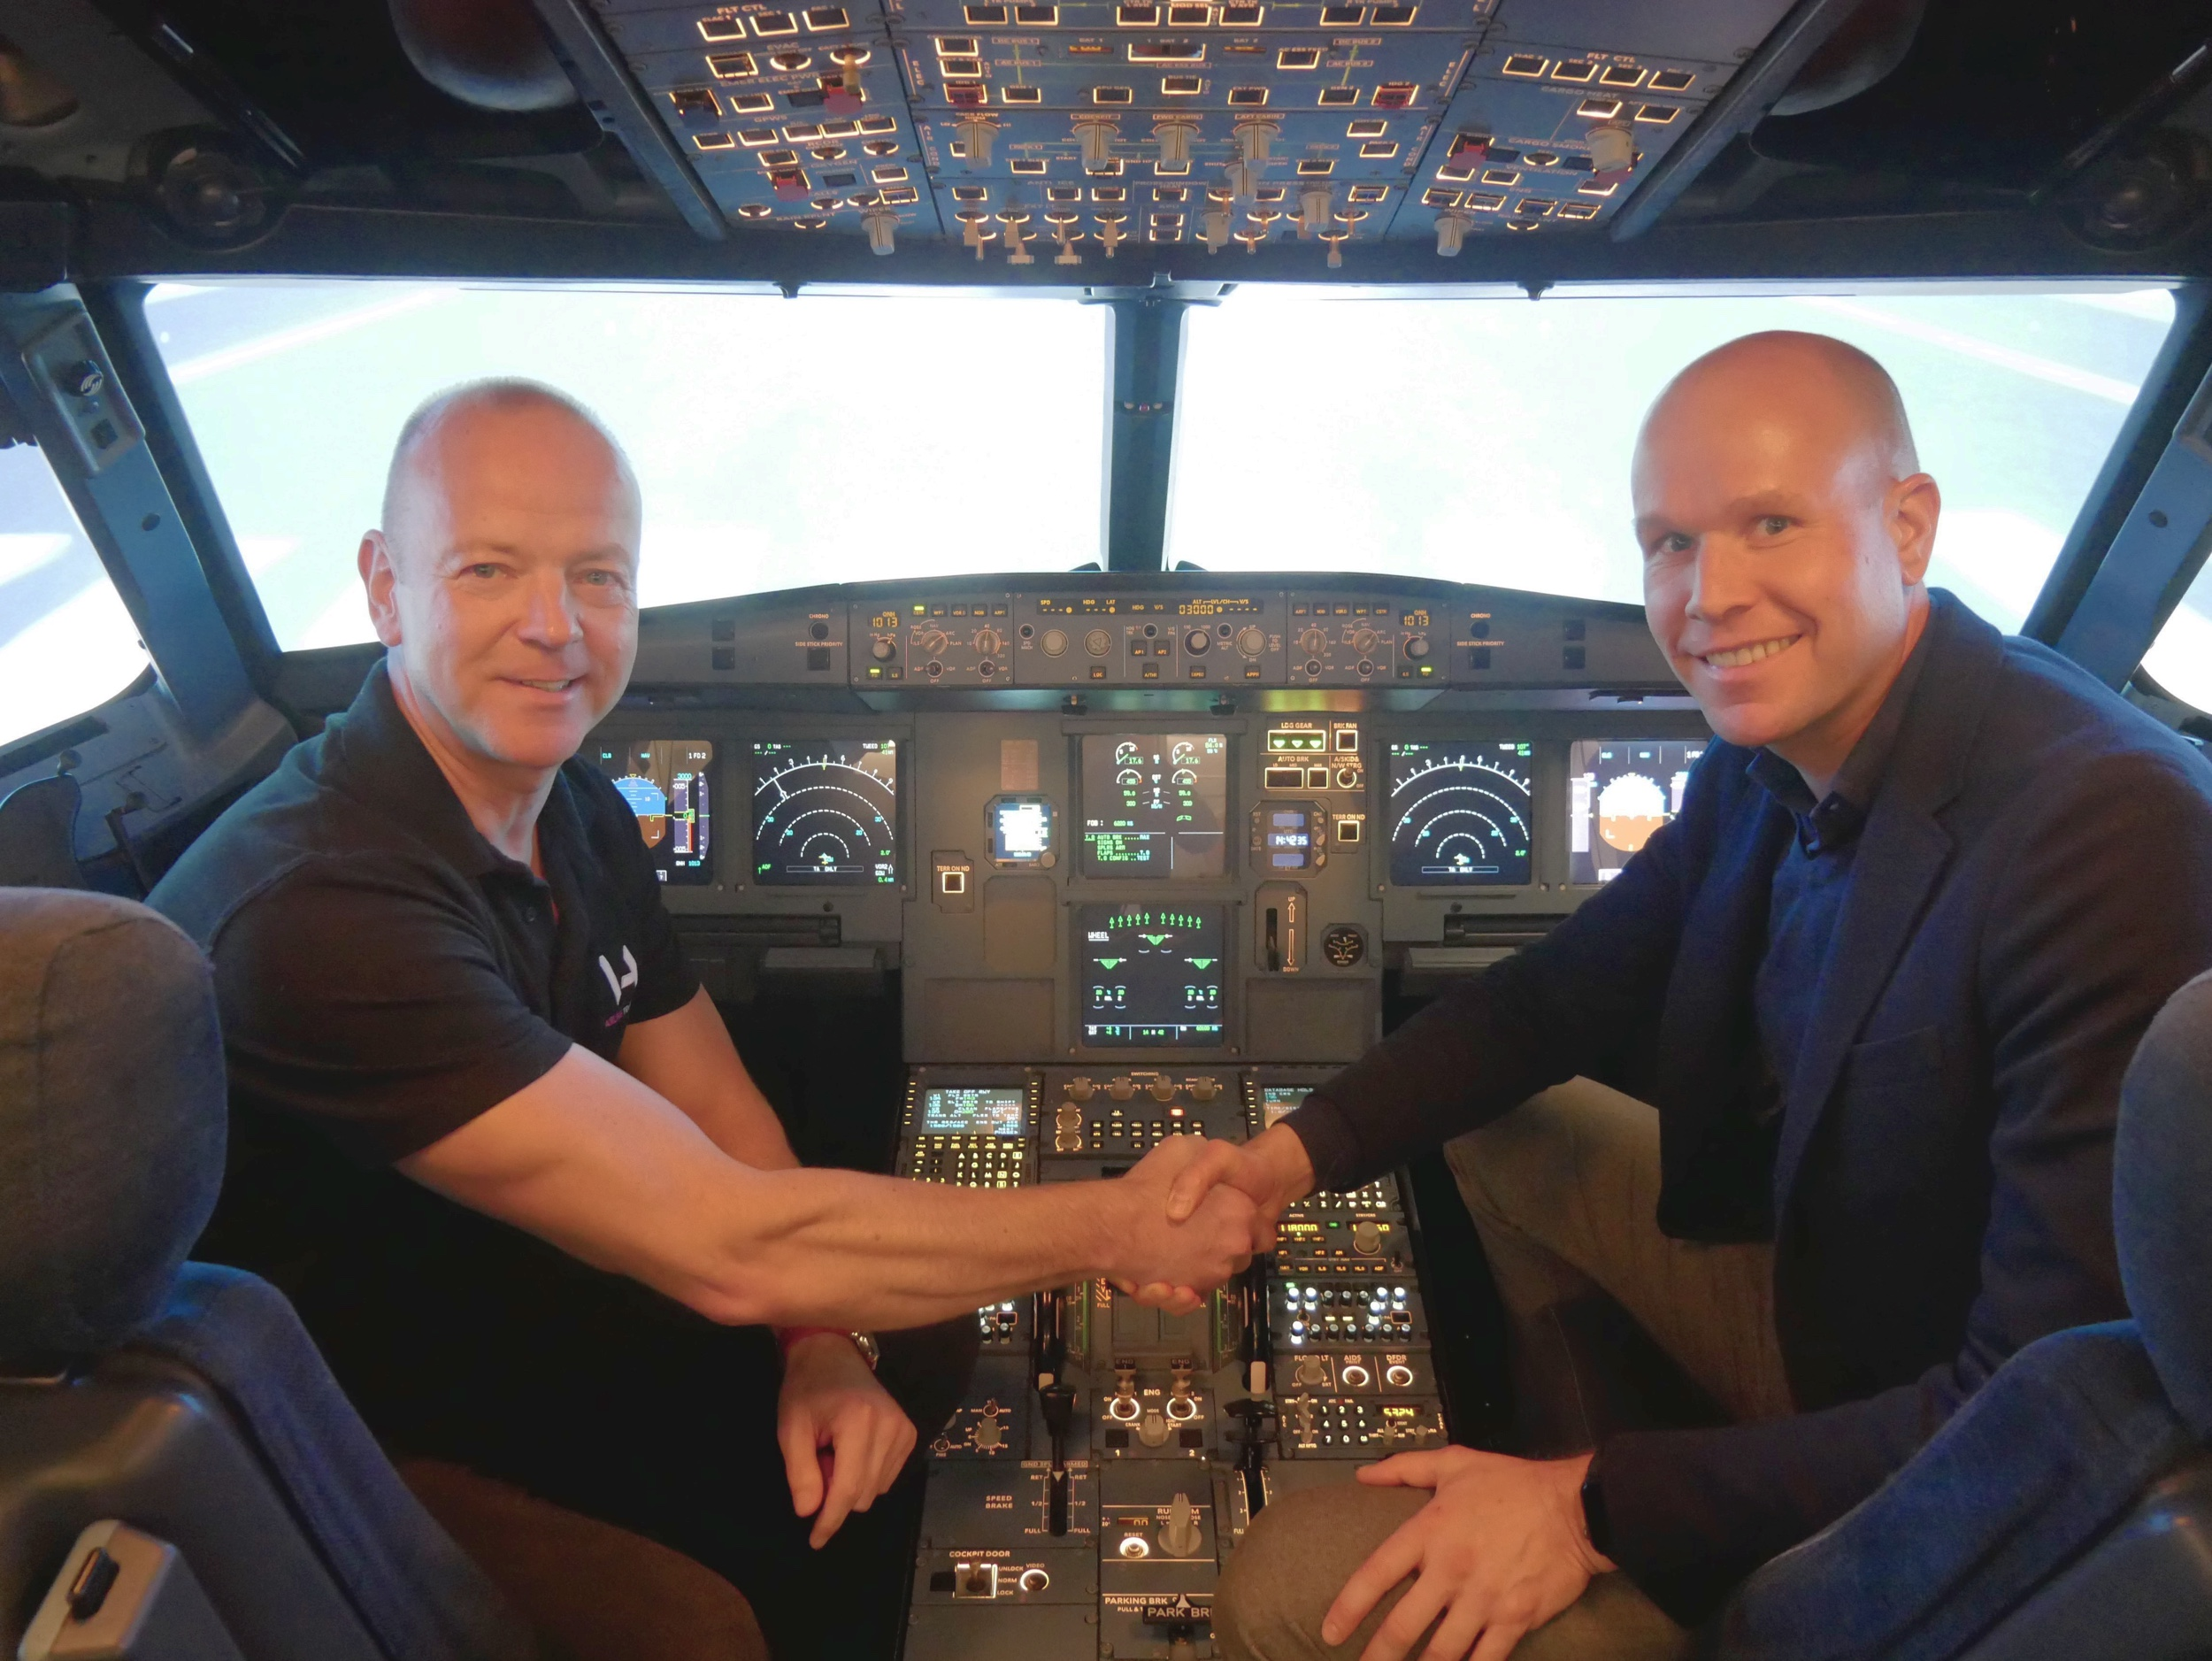 Anthony Petteford, Executive Director of VA Airline Training and Carst Lindeboom of MPS, pictured during the official handover of VA Airline Training's first A320ceo simulator at Cambridge Airport on 5 March 2019.